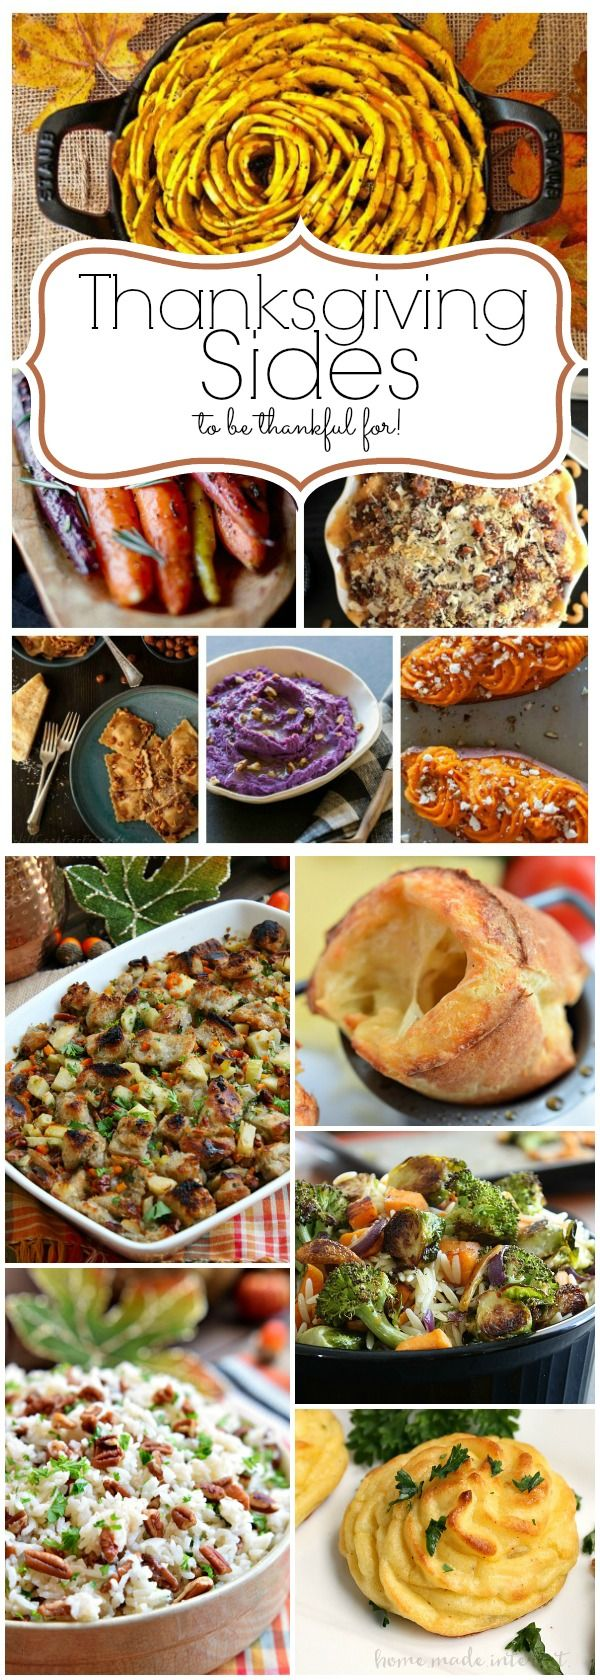 Thanksgiving Sides to be Thankful For